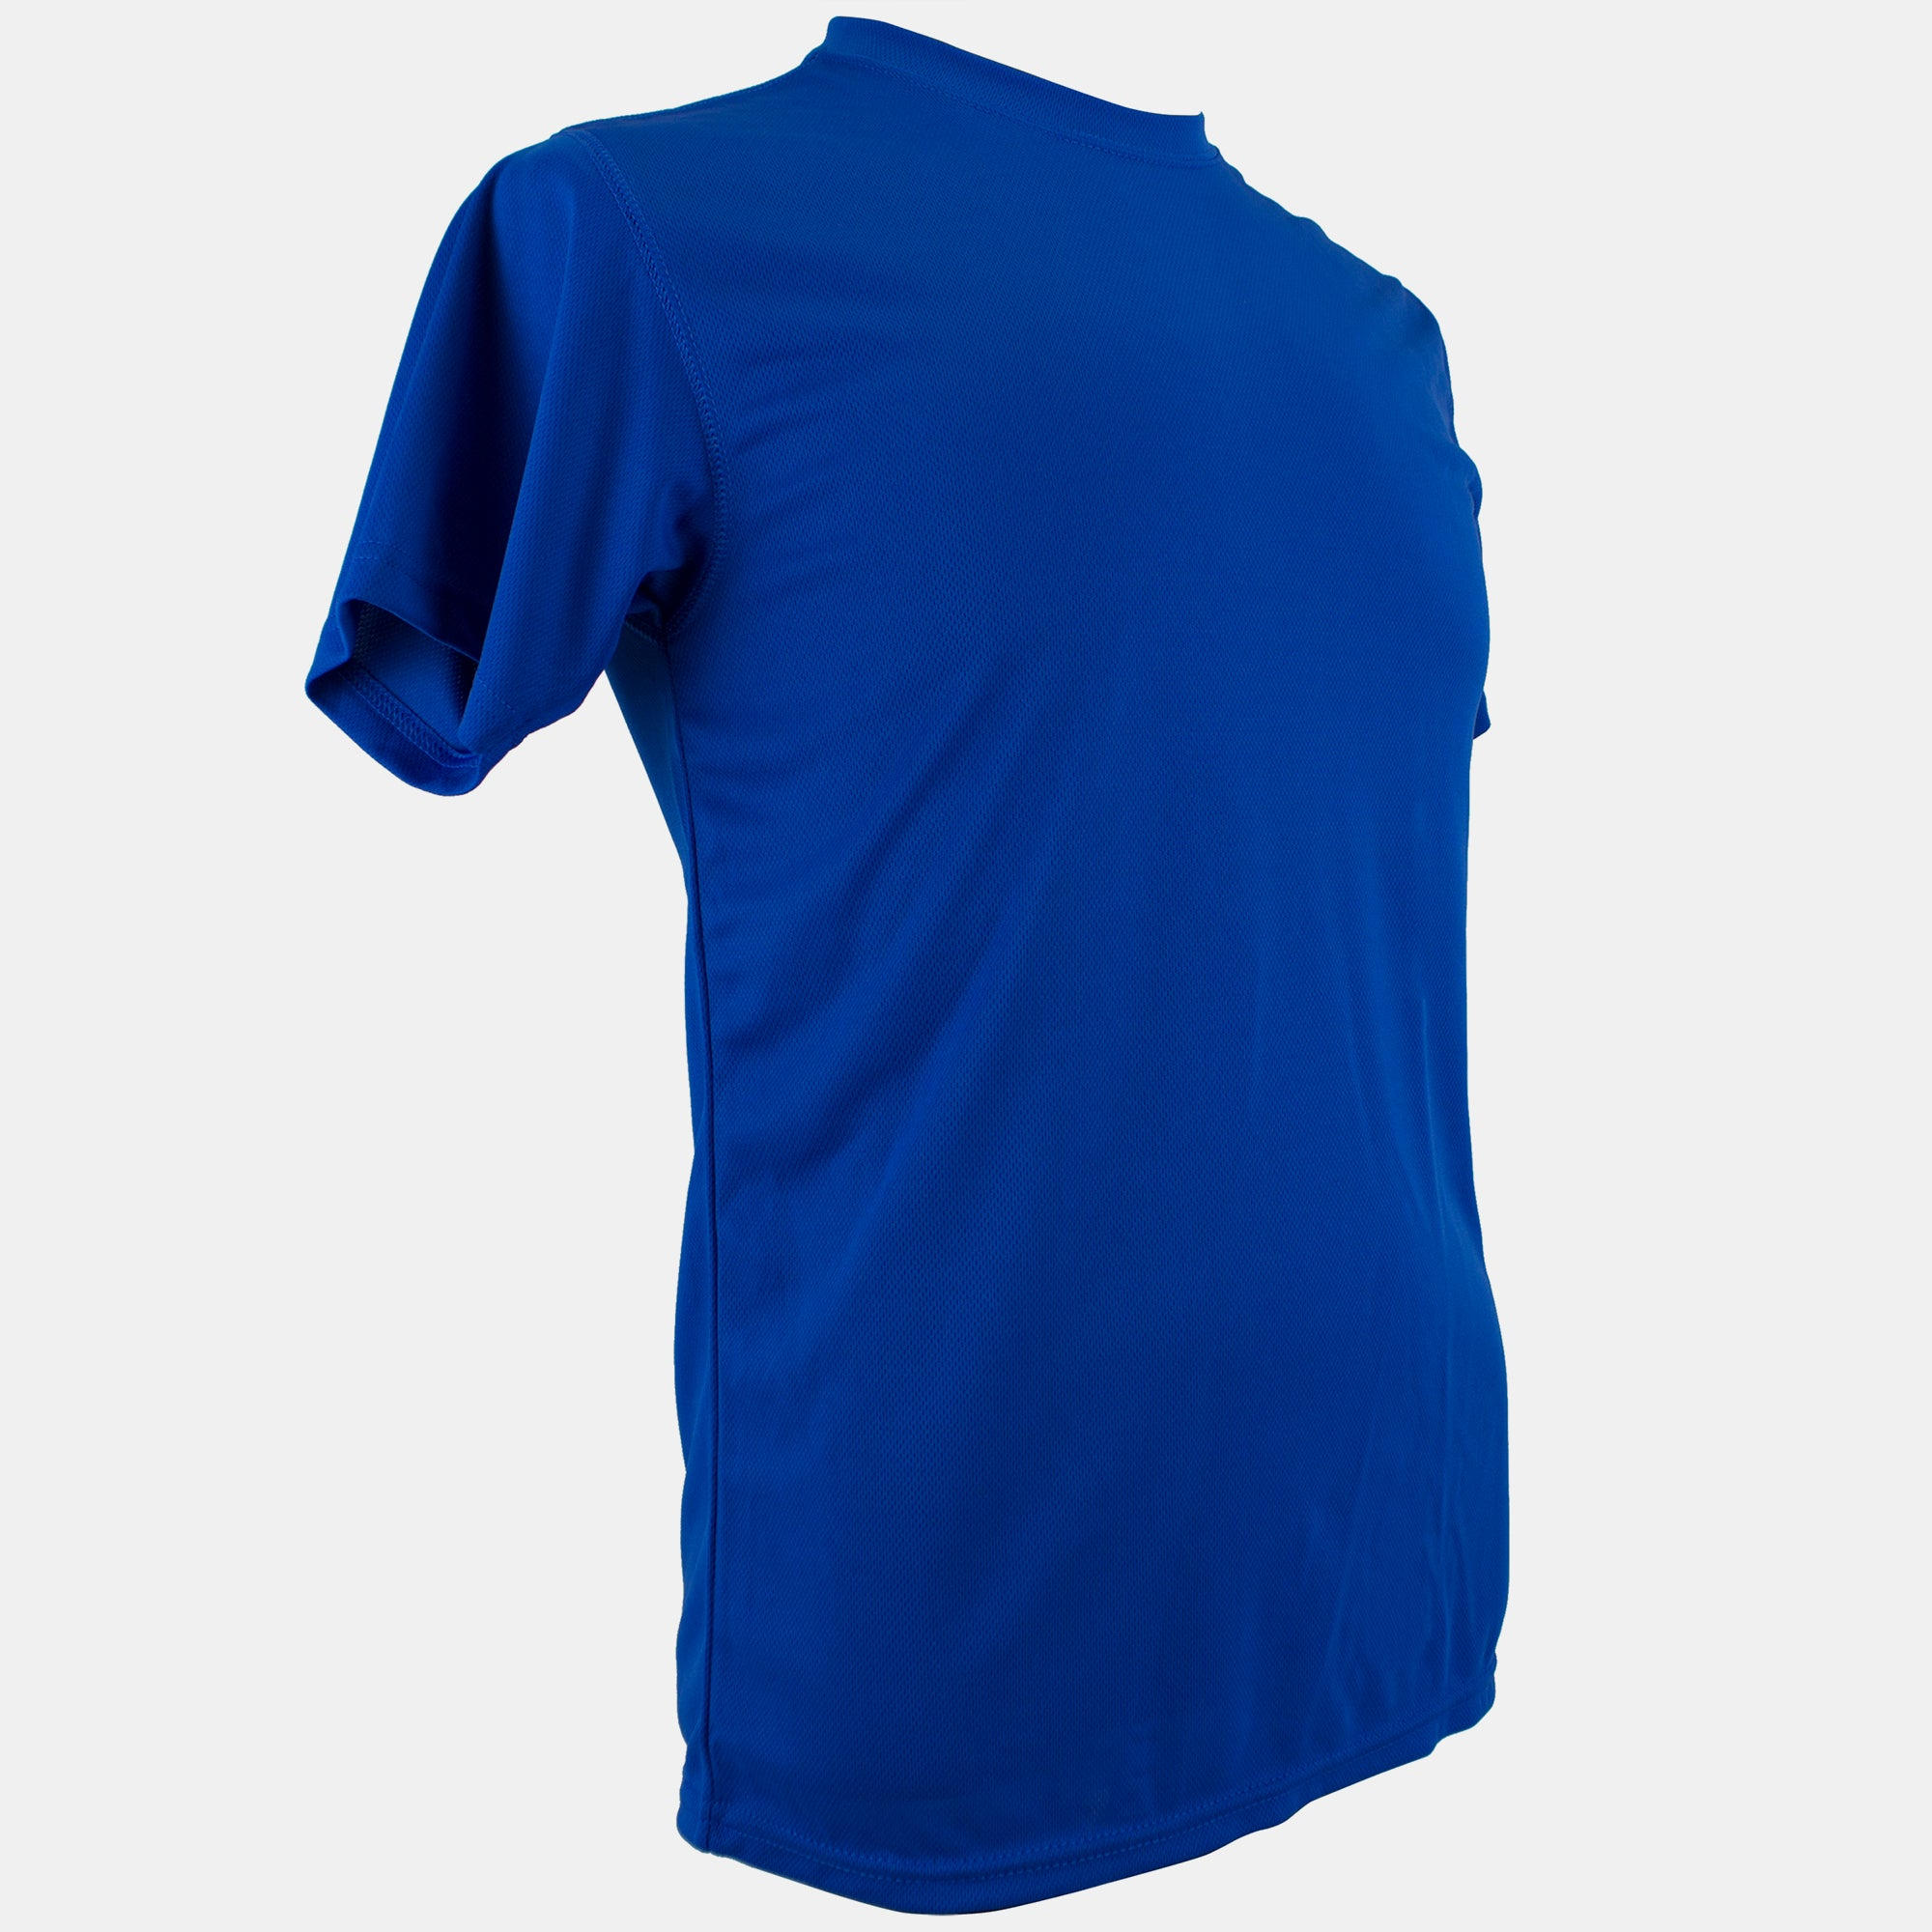 Eastsport Mesh Performance Tee